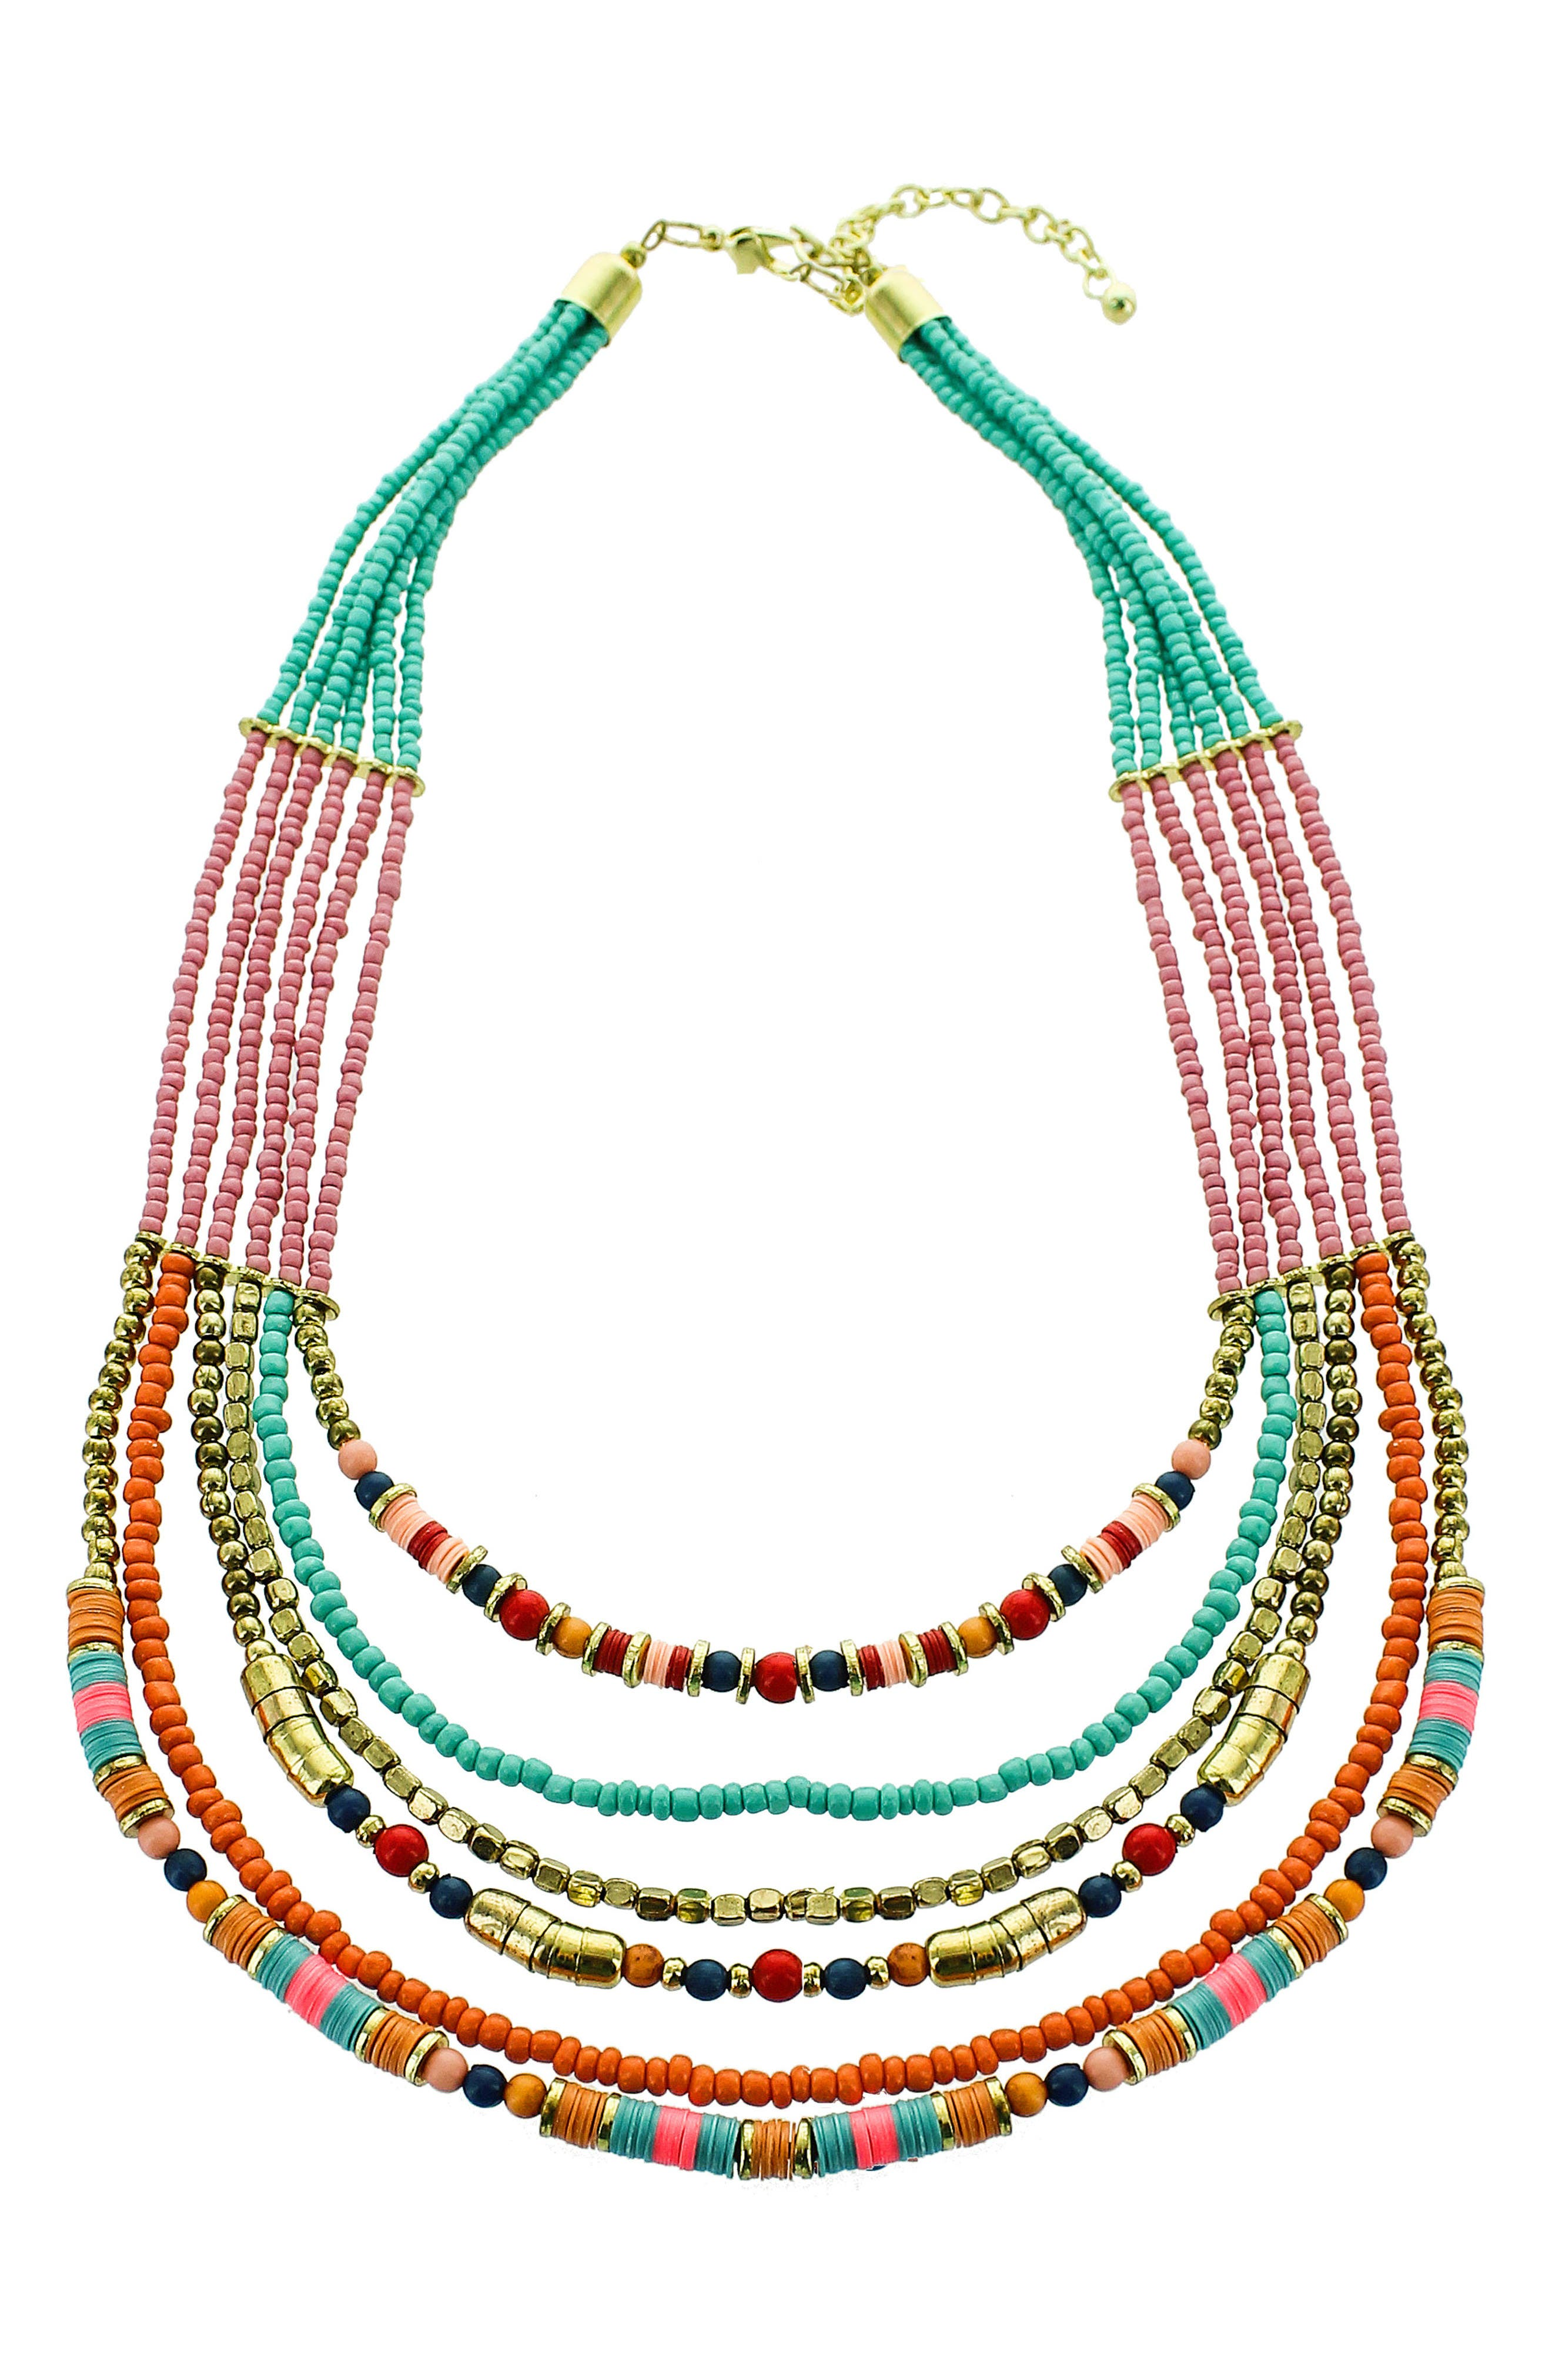 Multistrand Seed Bead Necklace,                             Main thumbnail 1, color,                             Turquoise/ Multi